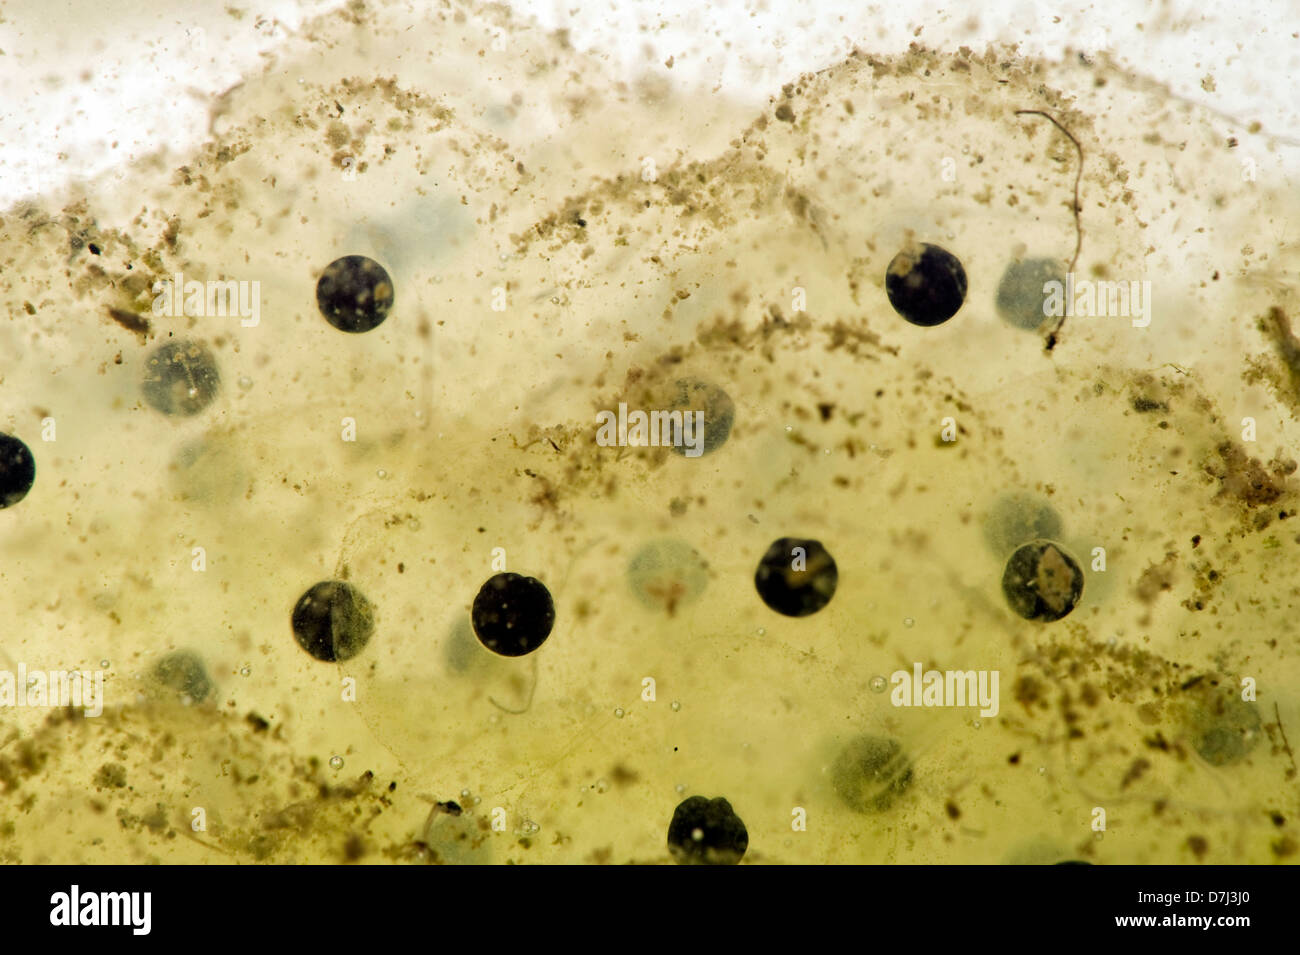 Frog spawn of a European frog, Rana temporaria, newly laid - Stock Image